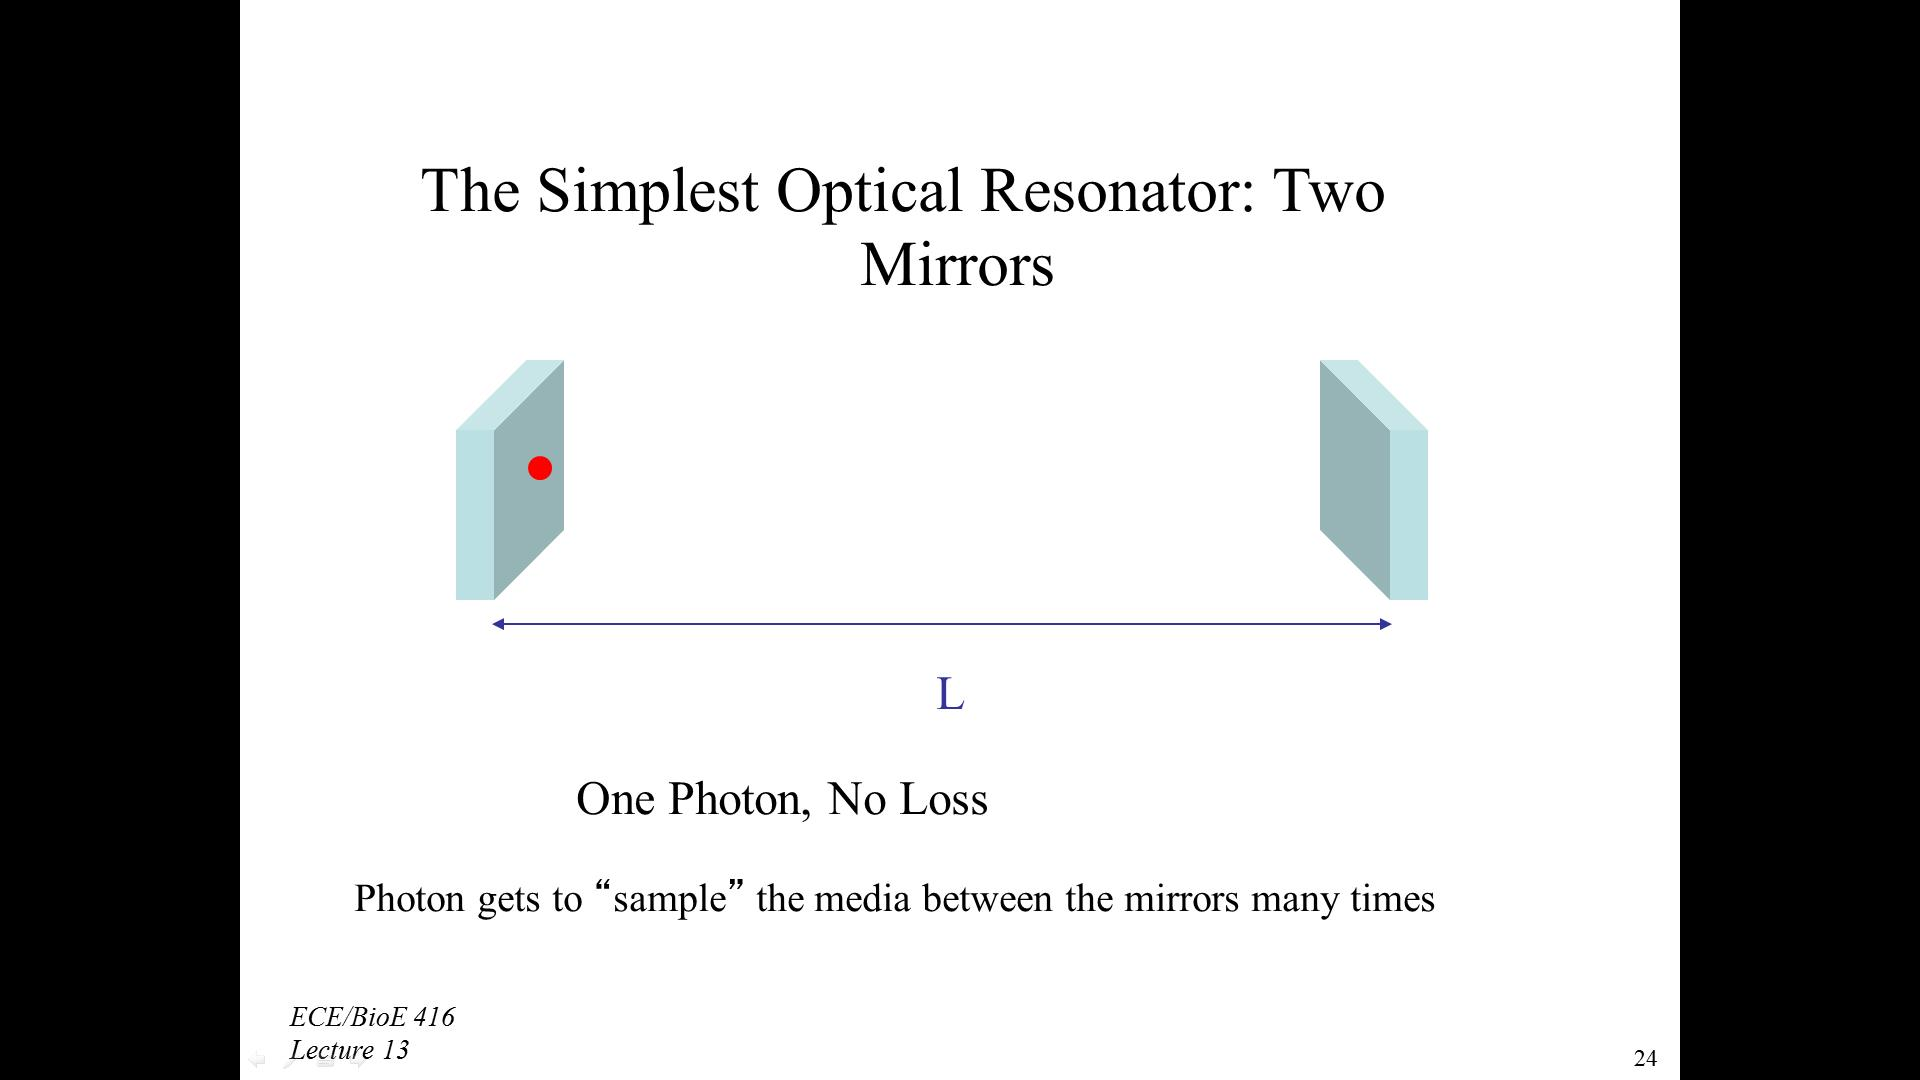 The Simplest Optical Resonator: Two Mirrors